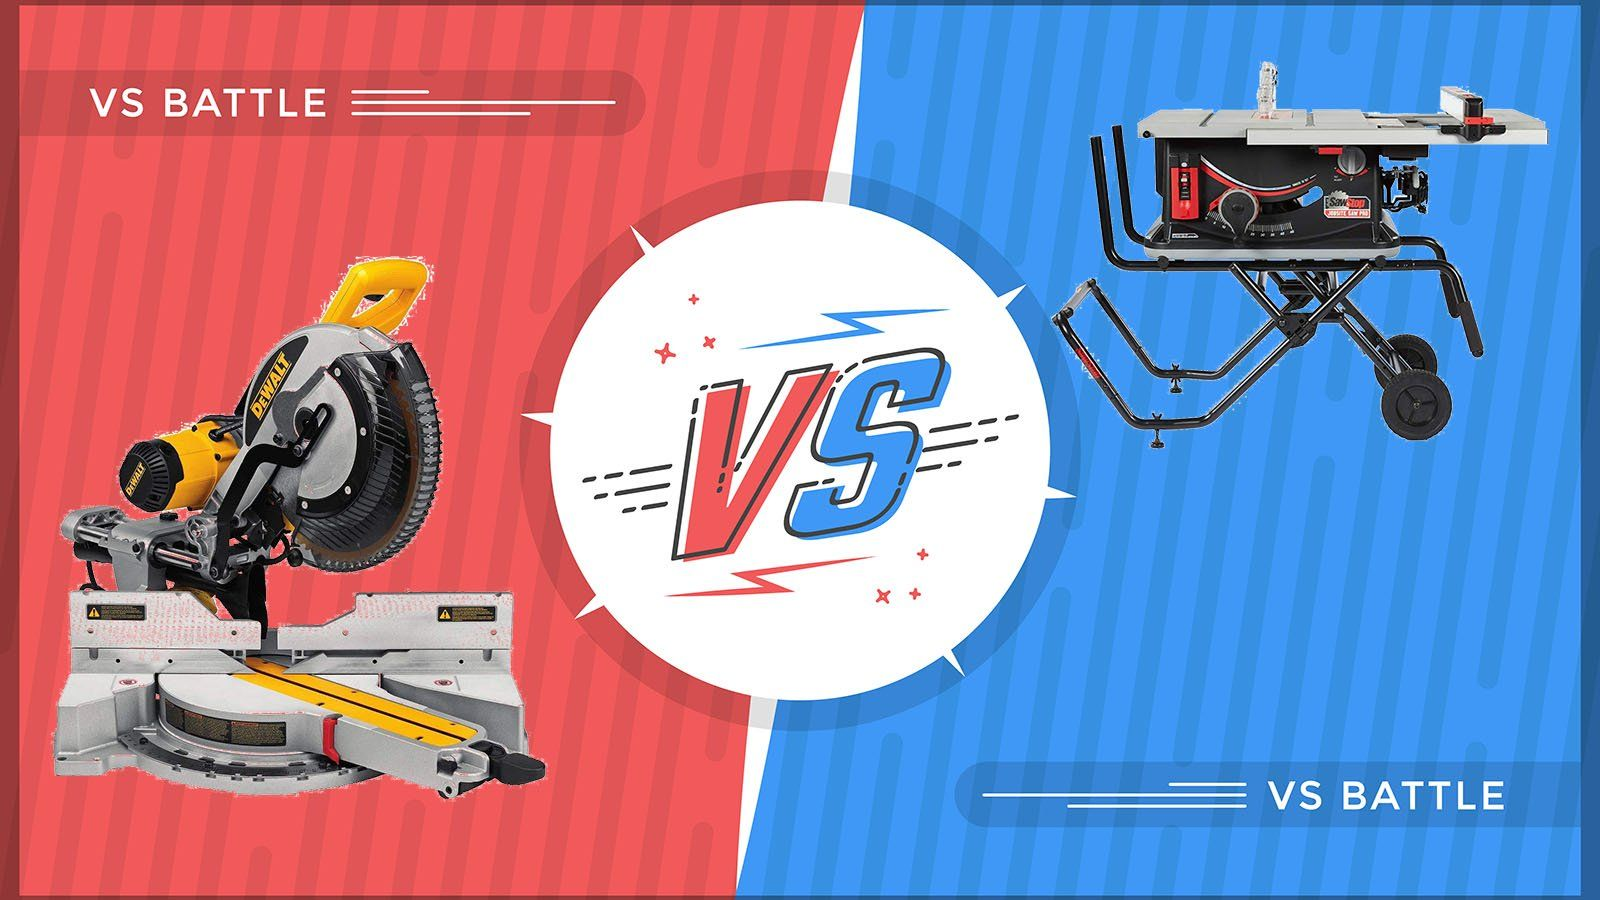 Table Saws Versus Miter Saws Which Should You Get Miter Saws Table Saws Used Table Saw